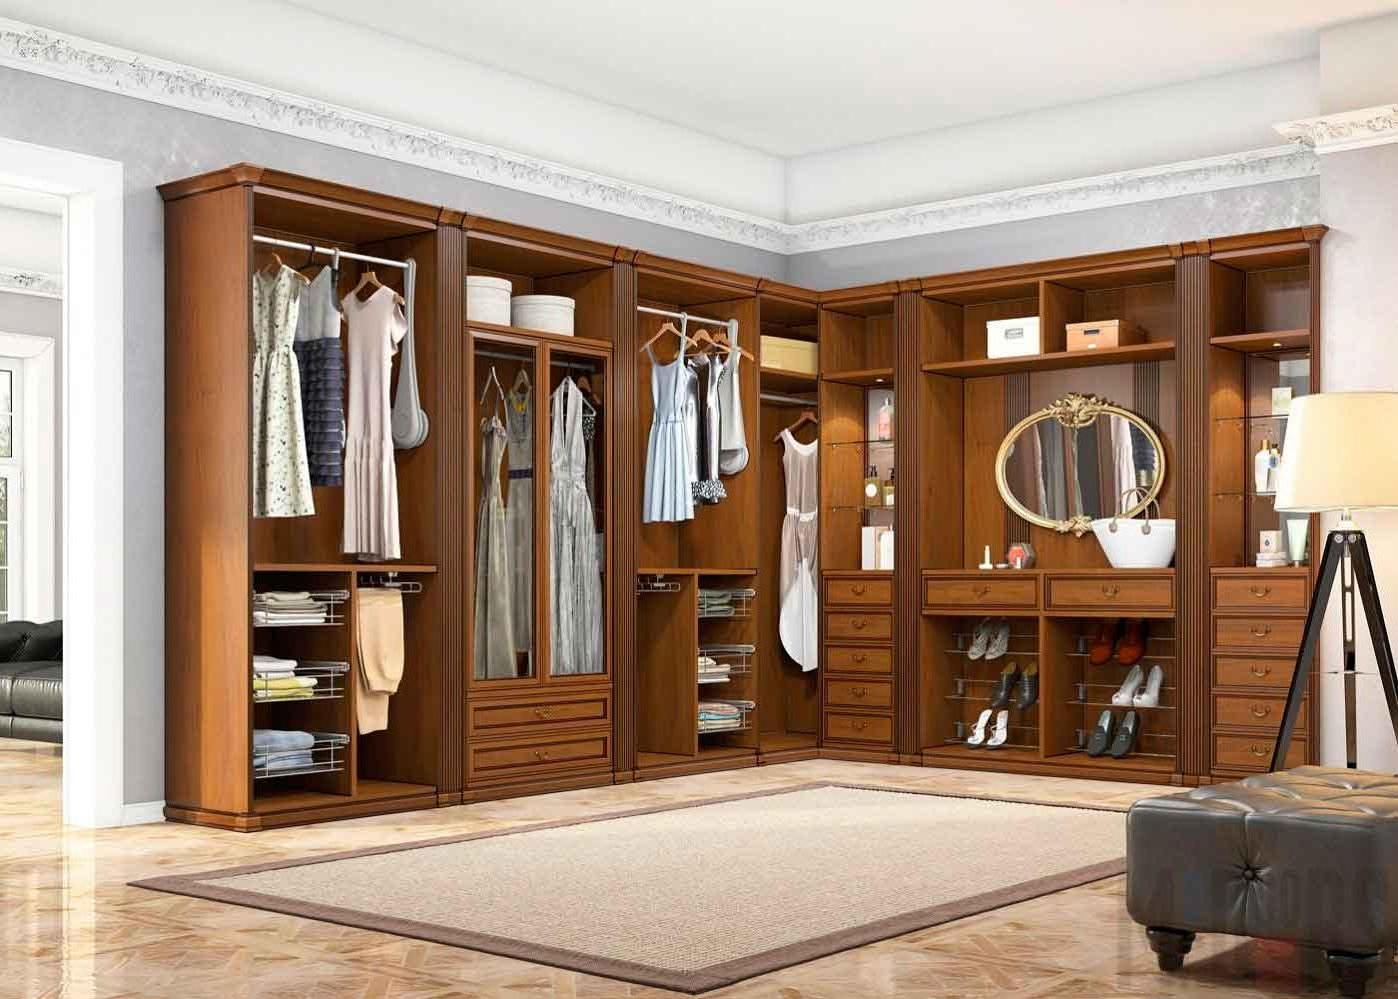 Interior classic dressing room in classic style